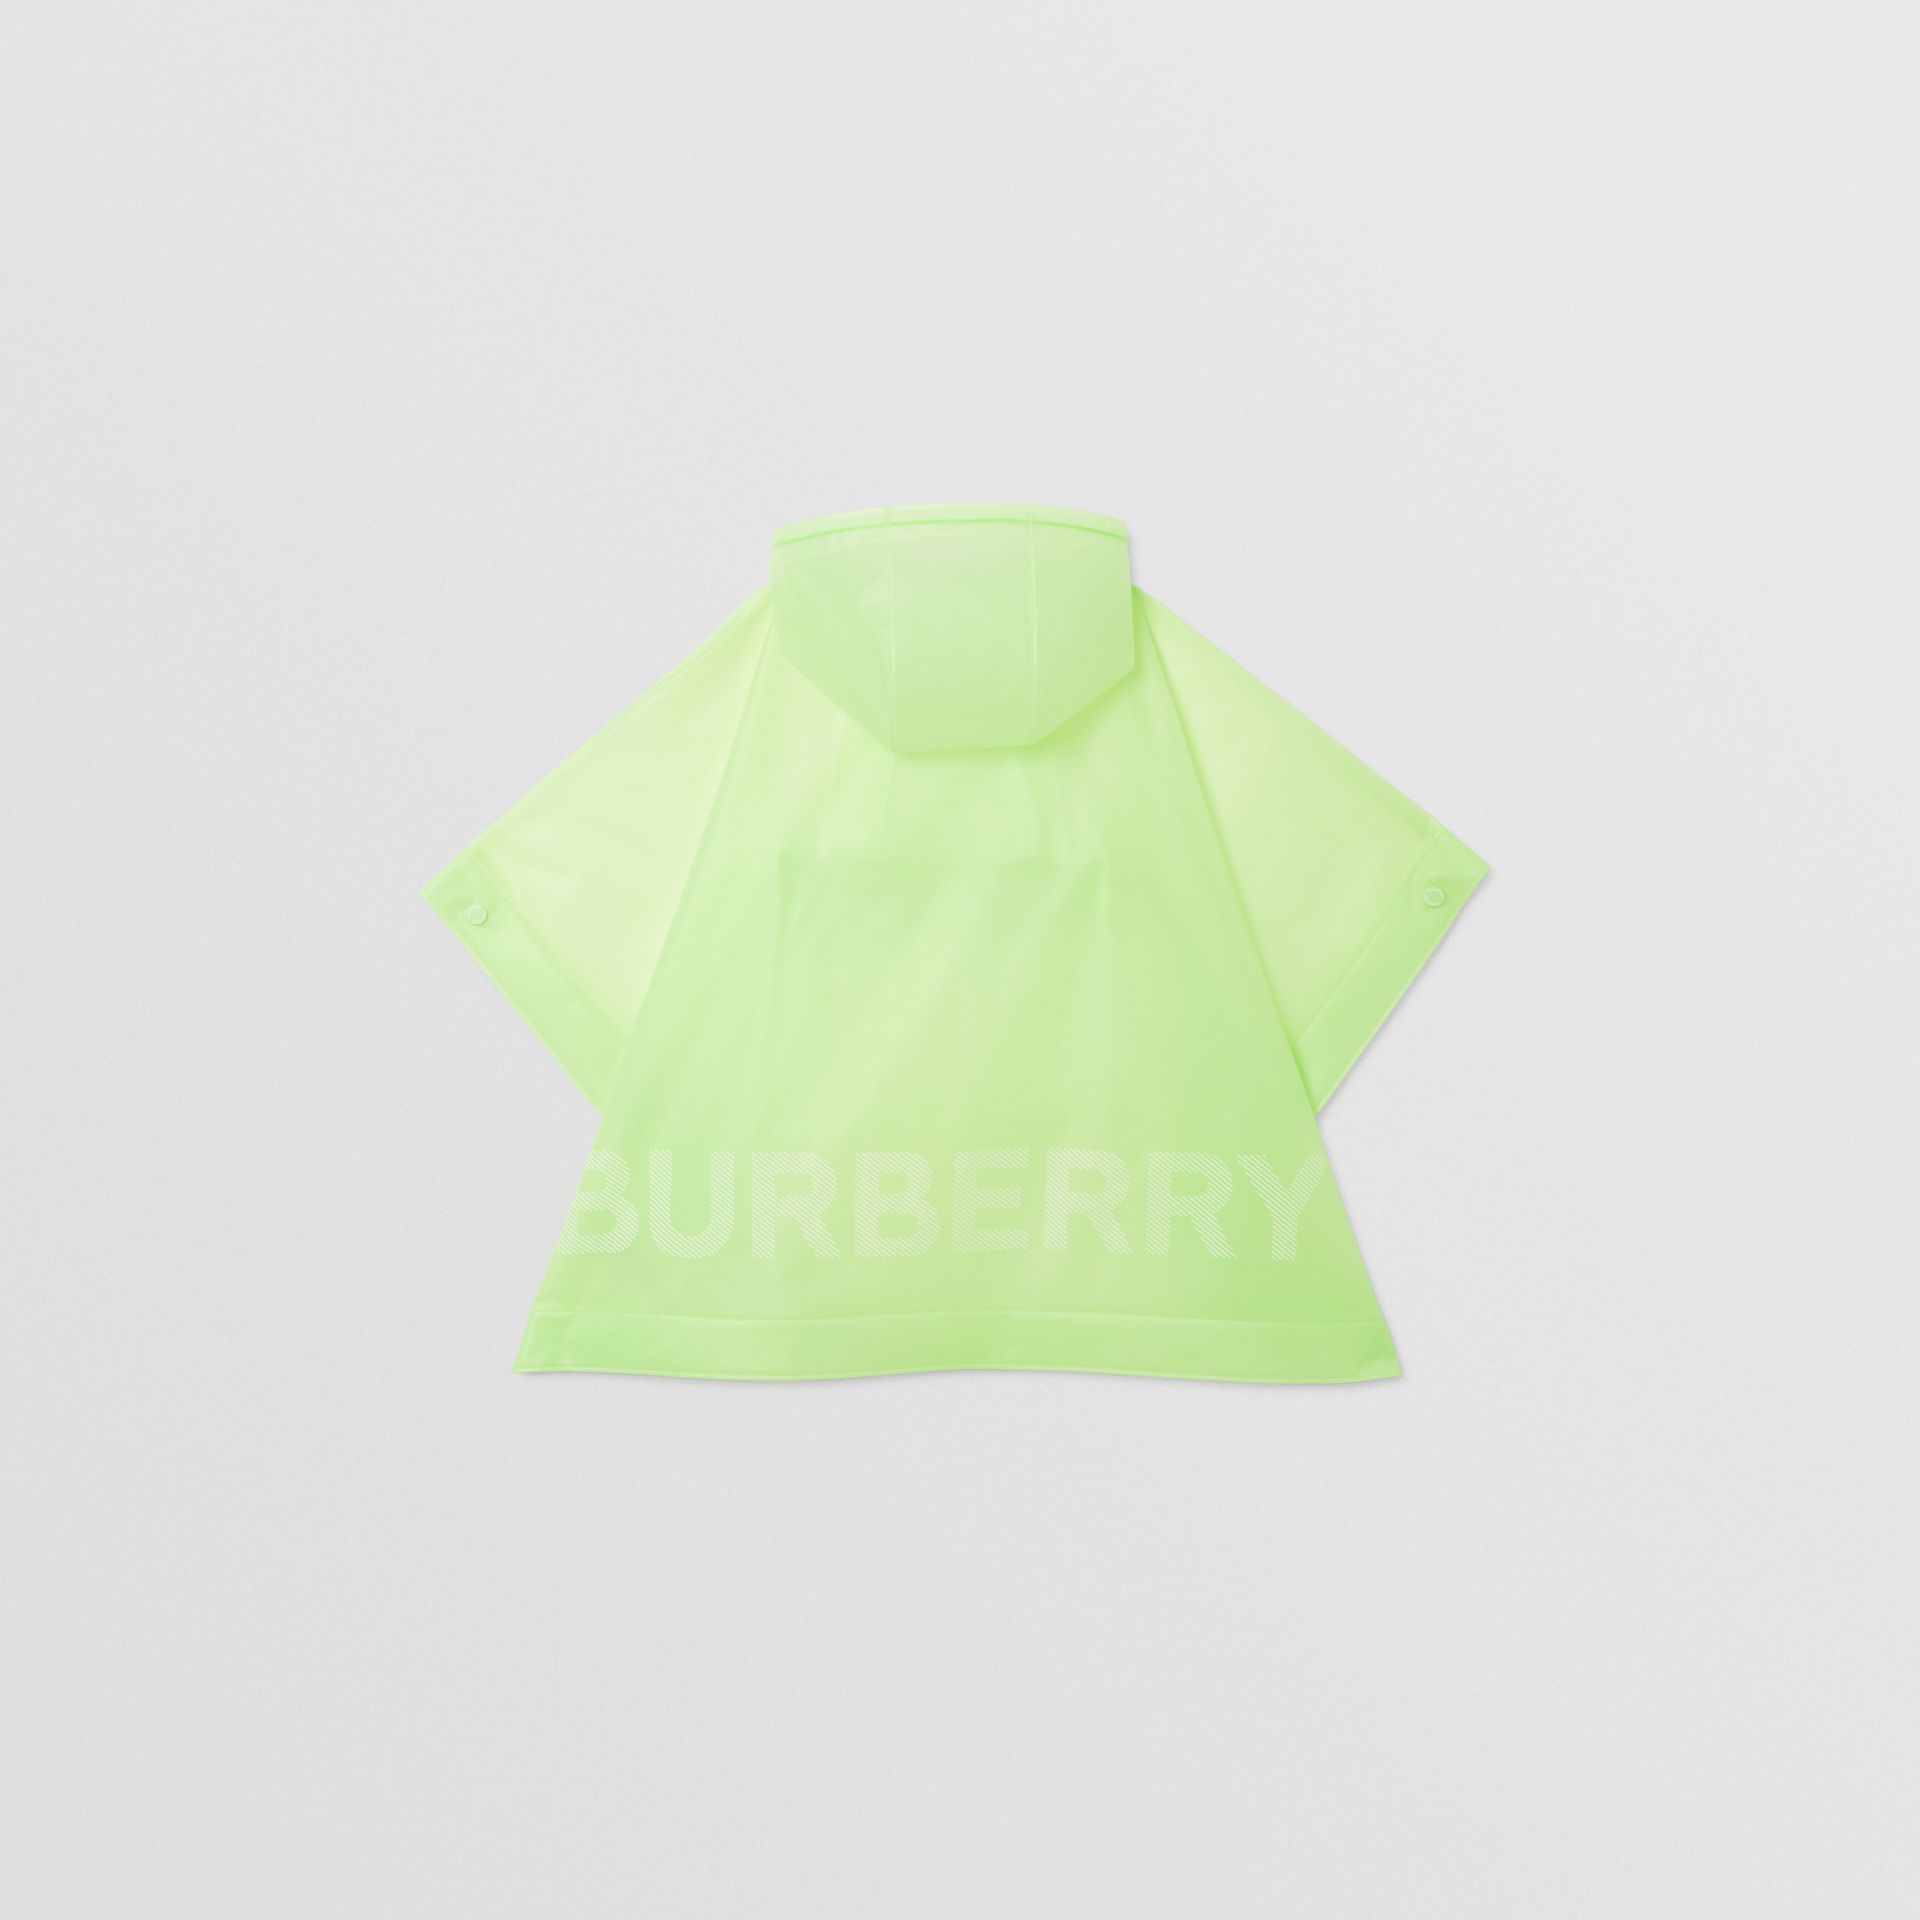 Logo Print Showerproof Hooded Poncho in Pistachio   Burberry - gallery image 4